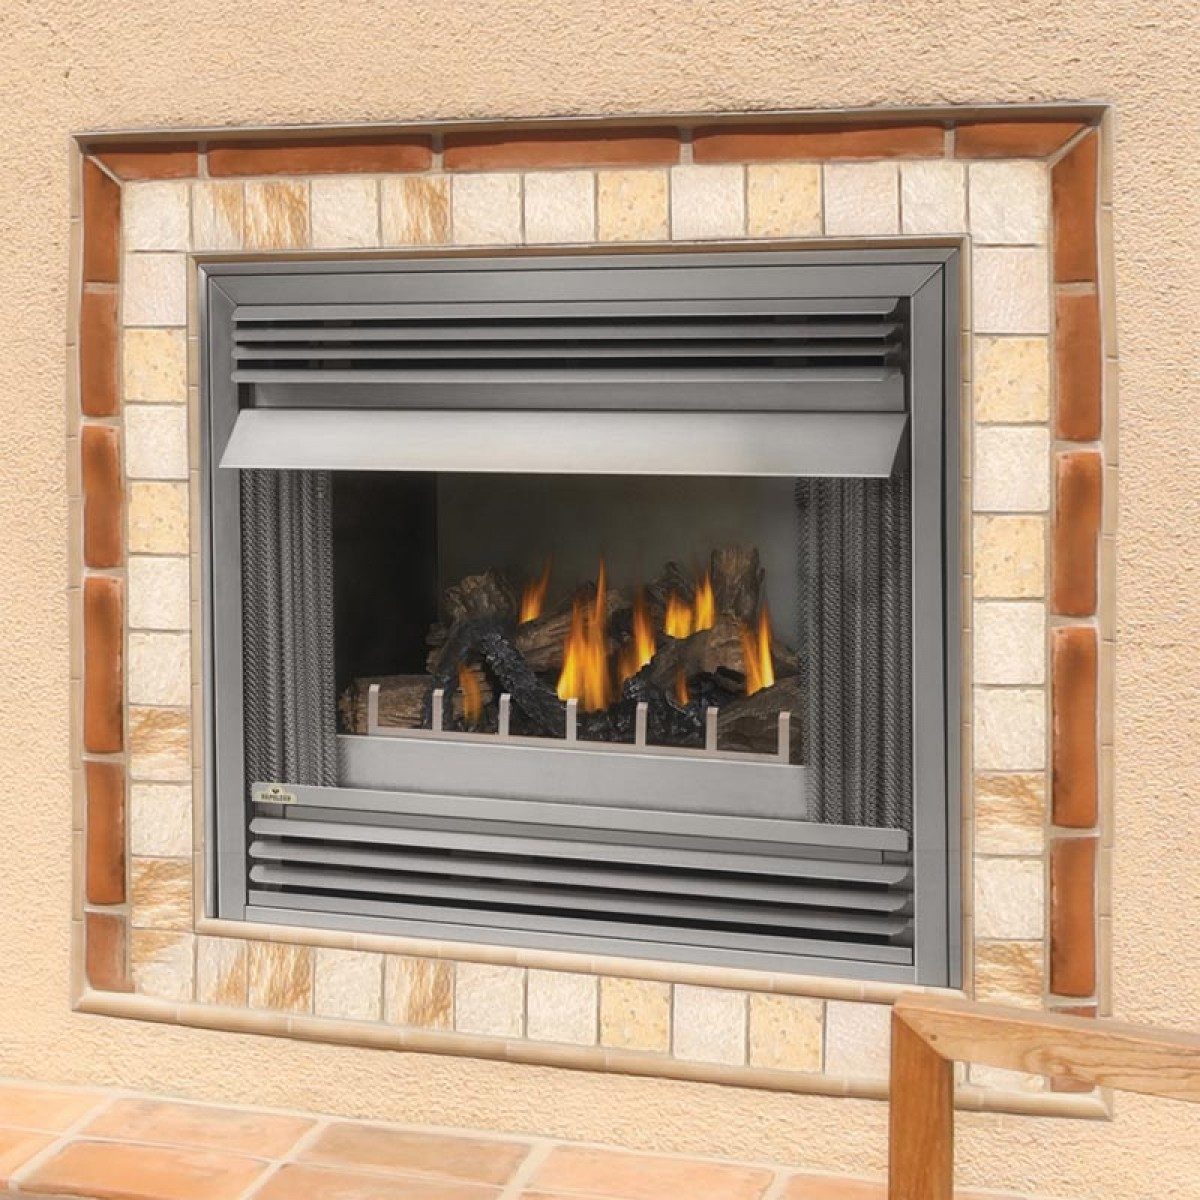 napoleon gss36n outdoor natural gas fireplace at ibuyfireplaces. Black Bedroom Furniture Sets. Home Design Ideas